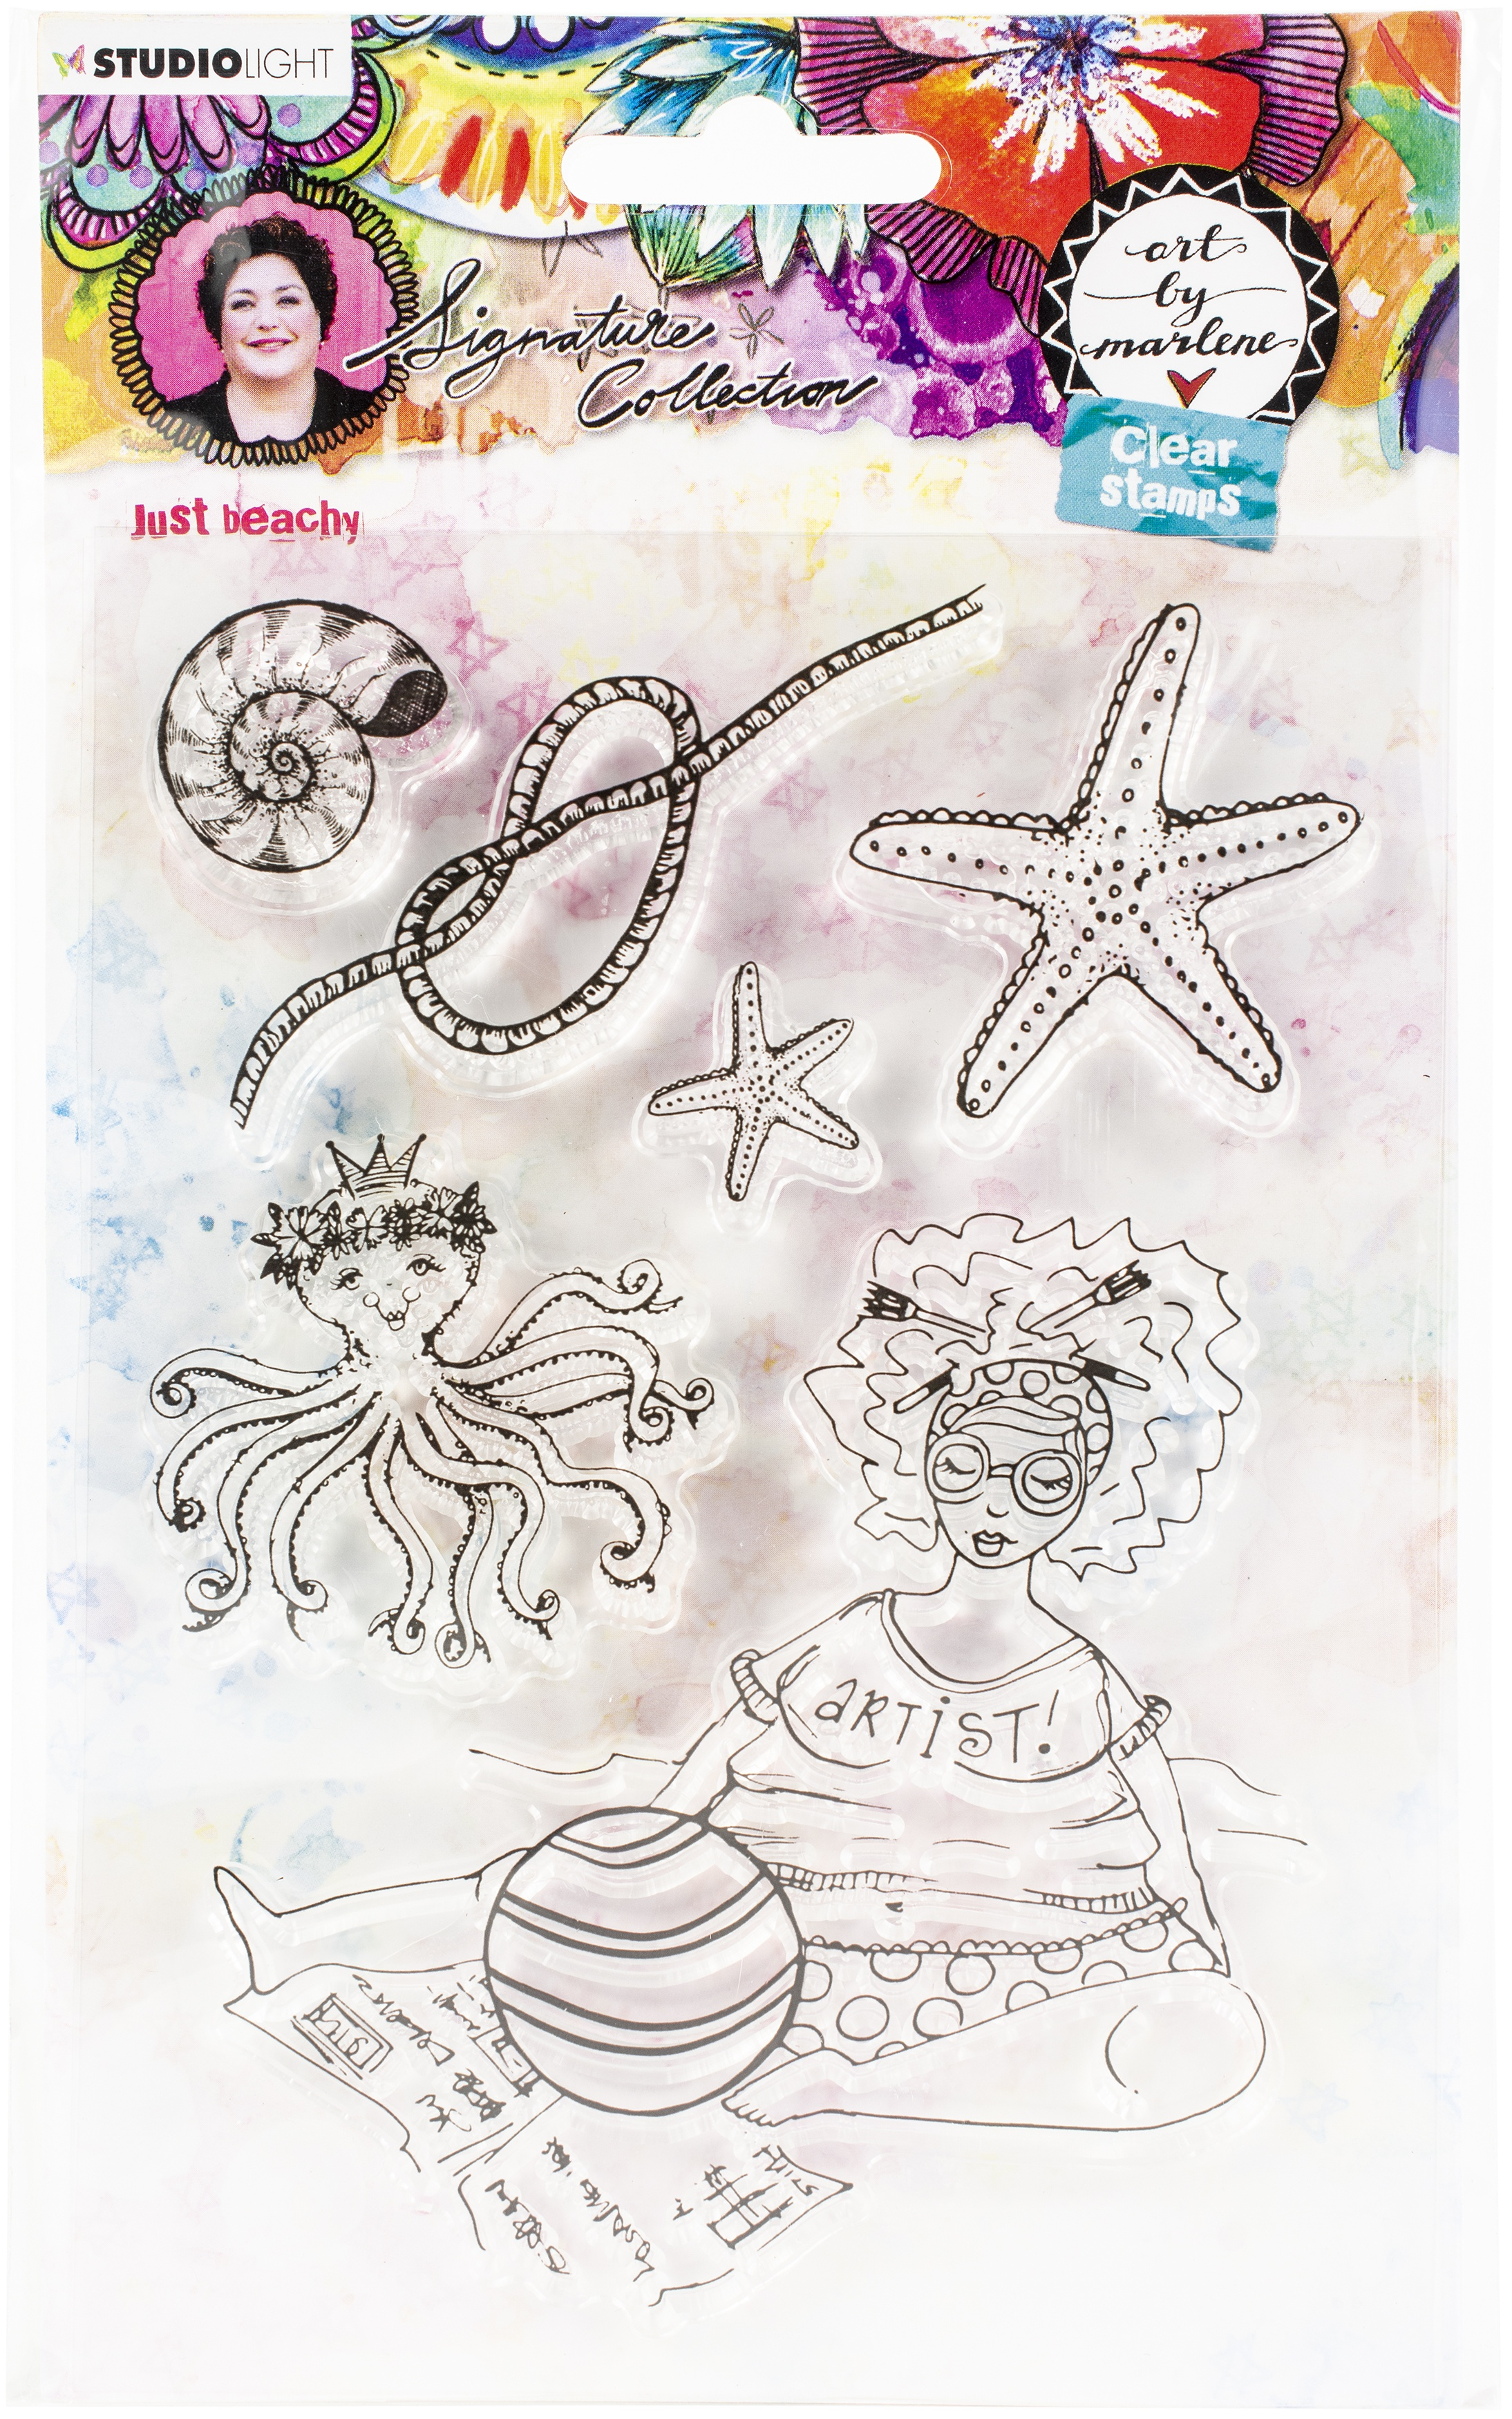 Studio Light Art By Marlene 5.0 Clear Stamps-NR. 53